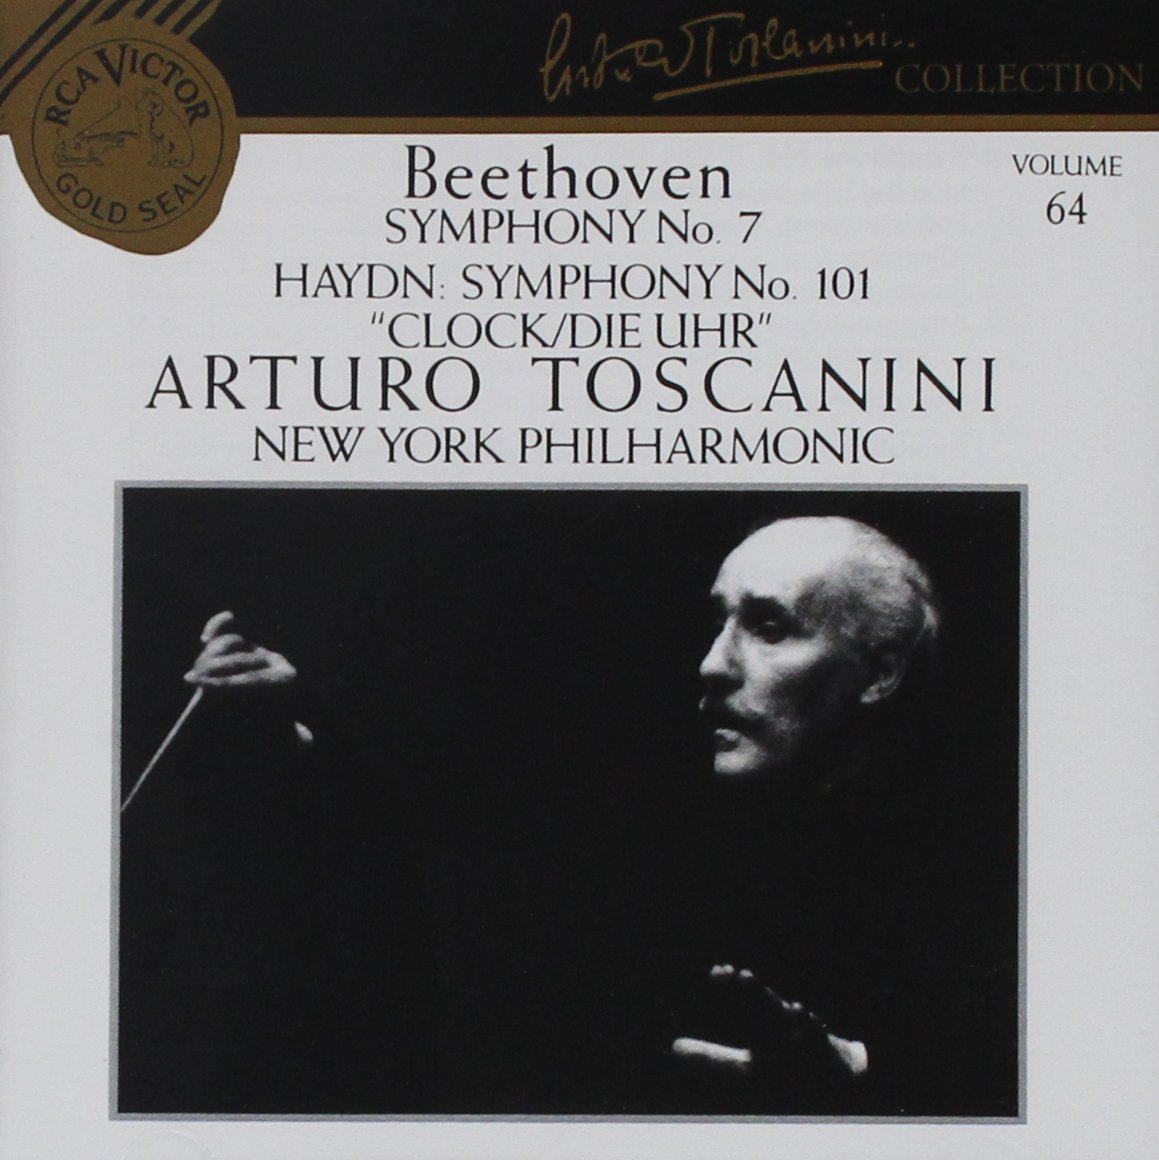 Beethoven: Symphony No 7; Haydn: Symphony No. 101; Mendelssohn: Scherzo from ''A Midsummer Night's Dream'' (Arturo Toscanini Collection, Vol. 64) by RCA Legacy